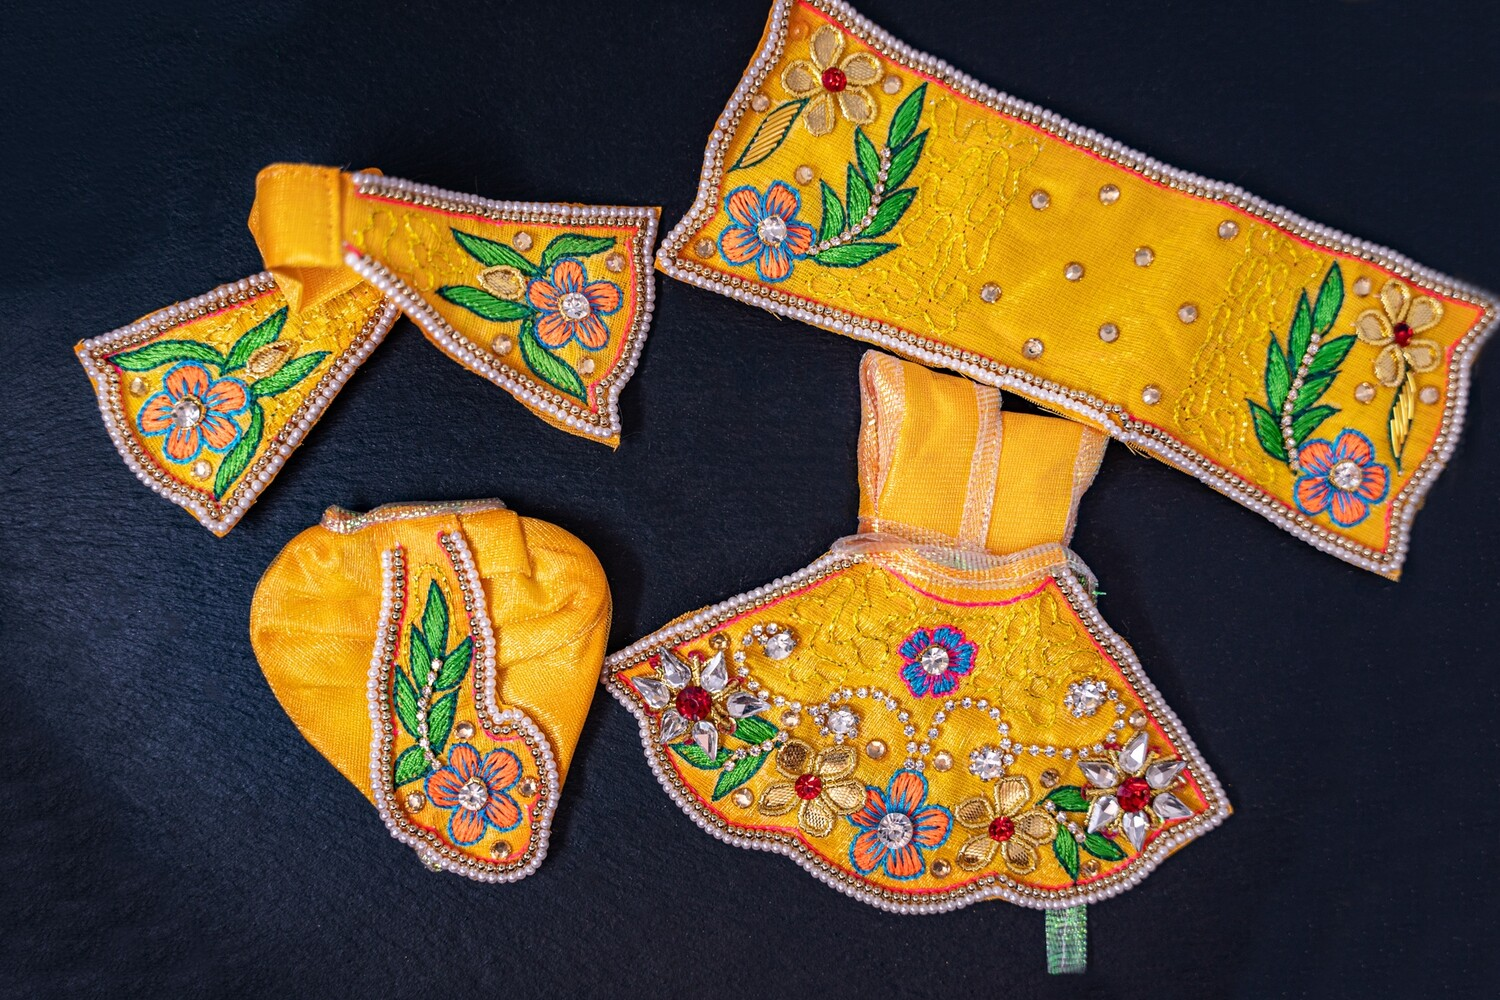 Deity clothing for Radha-Krishna, Sita-Rama, or Lakshmi-Narayana (for 160-180mm deities)